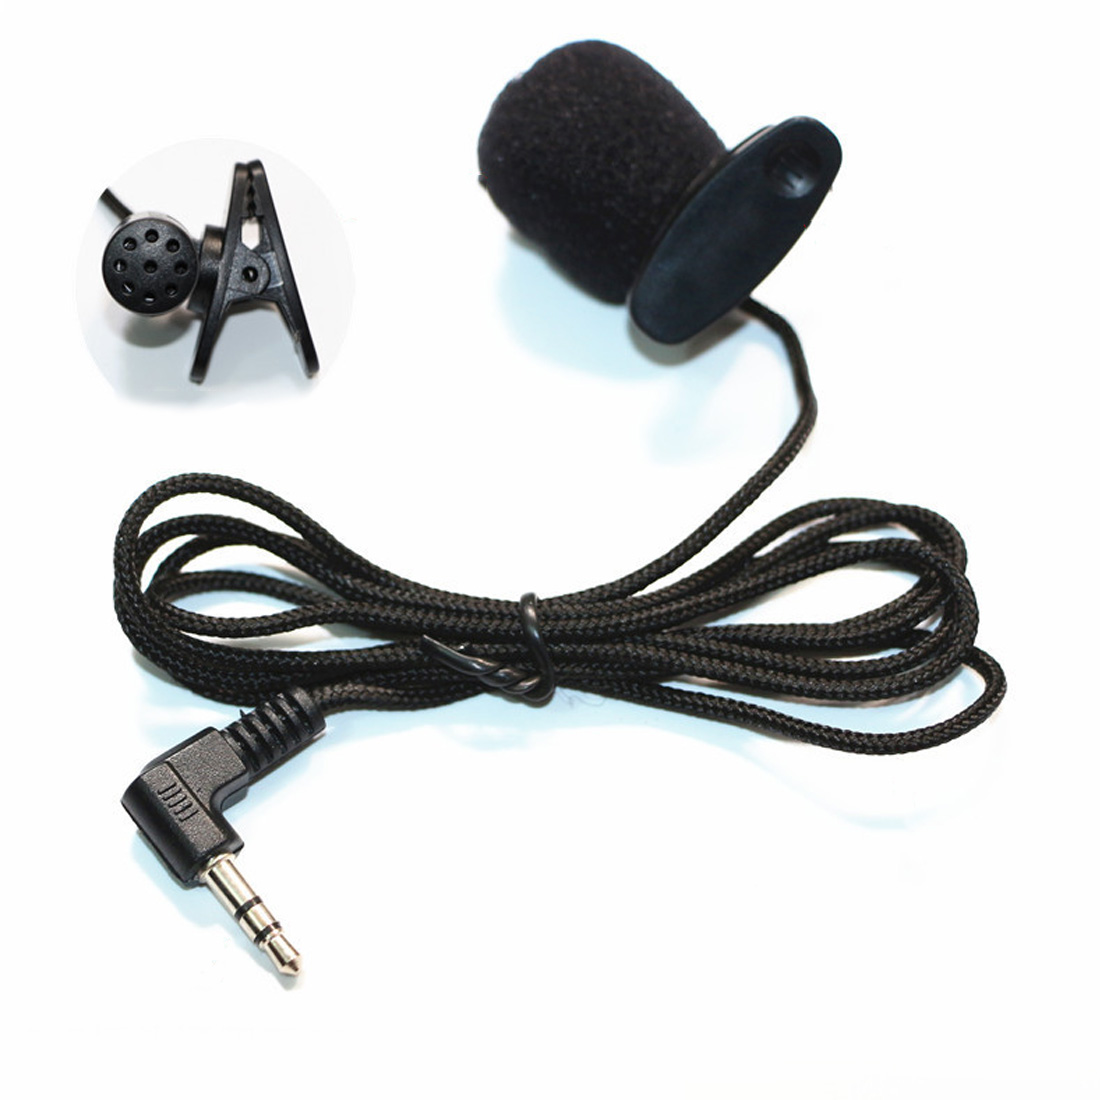 1.18m Mini Clip-on Lapel Microphone Hands-free 3.5mm Condenser Wired Microphone